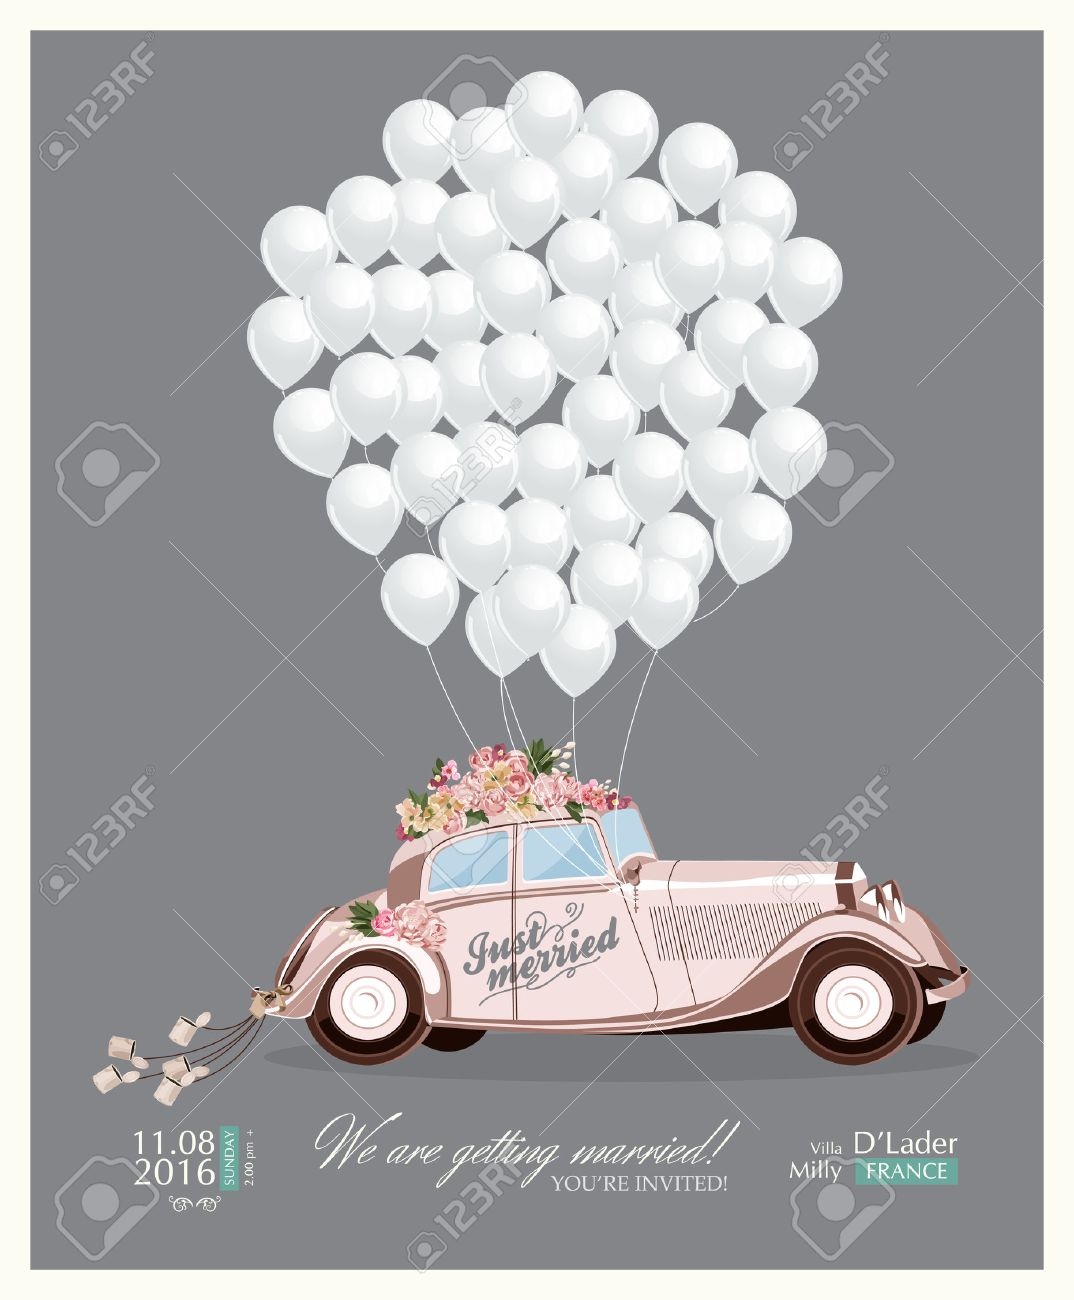 Vintage wedding invitation with just married retro car and white balloons Stock Vector - 43462753